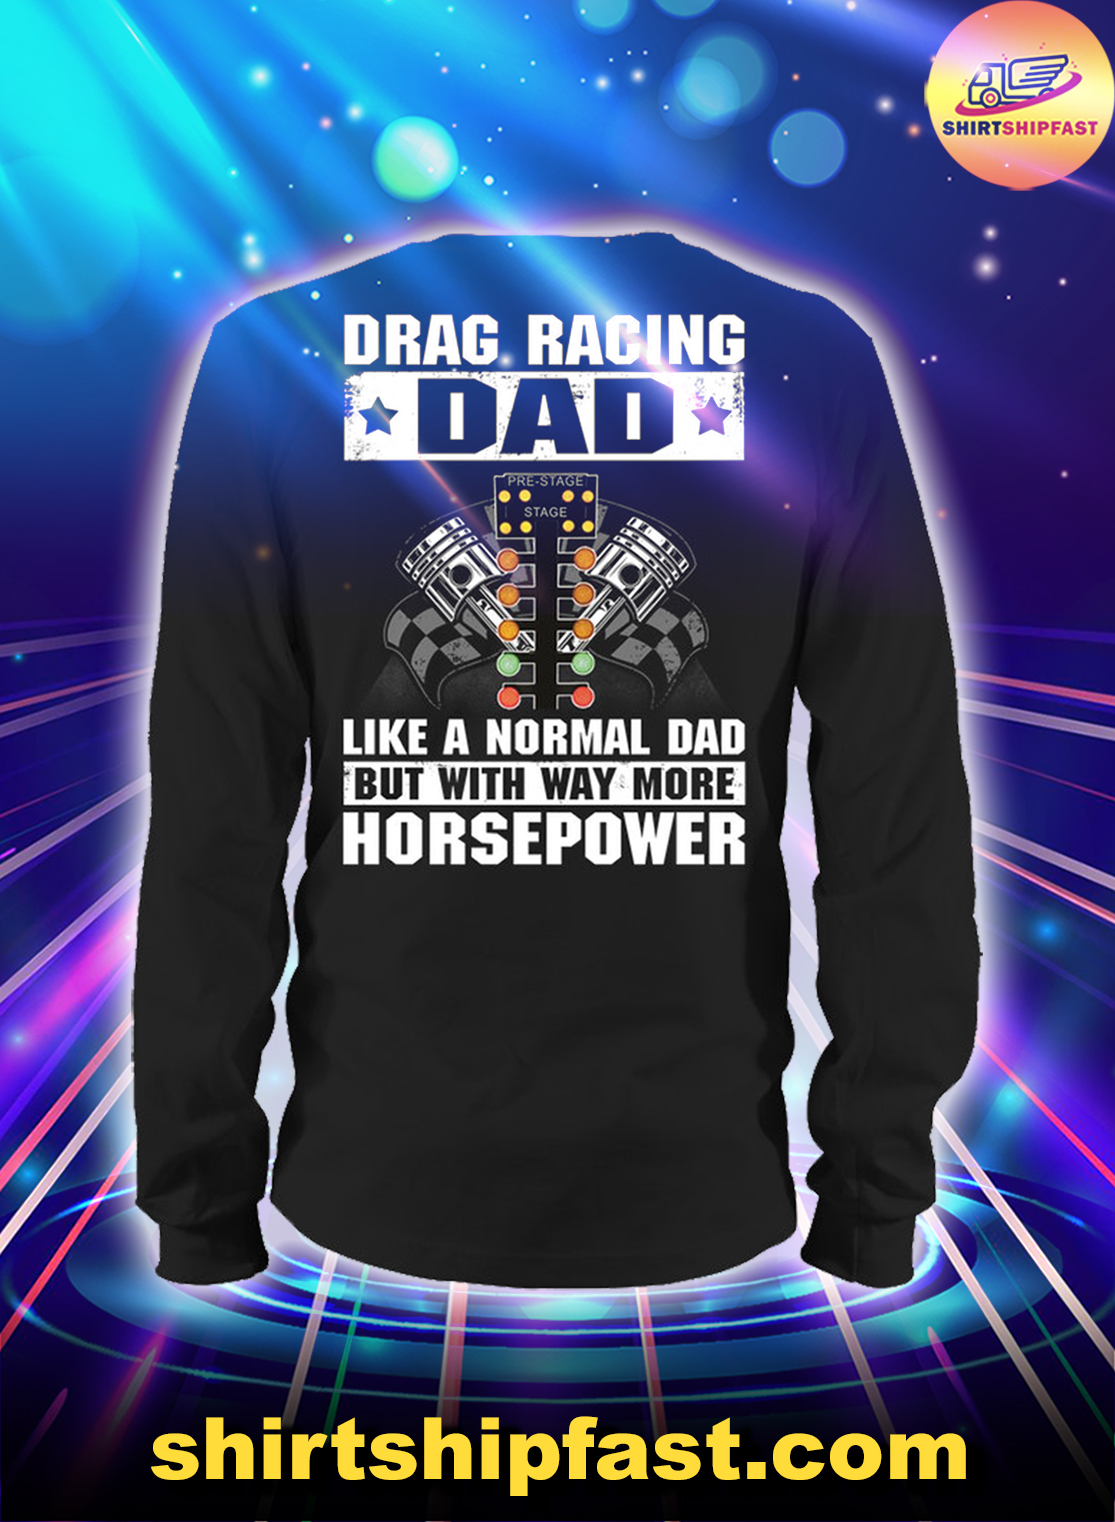 Drag racing dad like a normal dad but with way more horsepower long sleeve tee